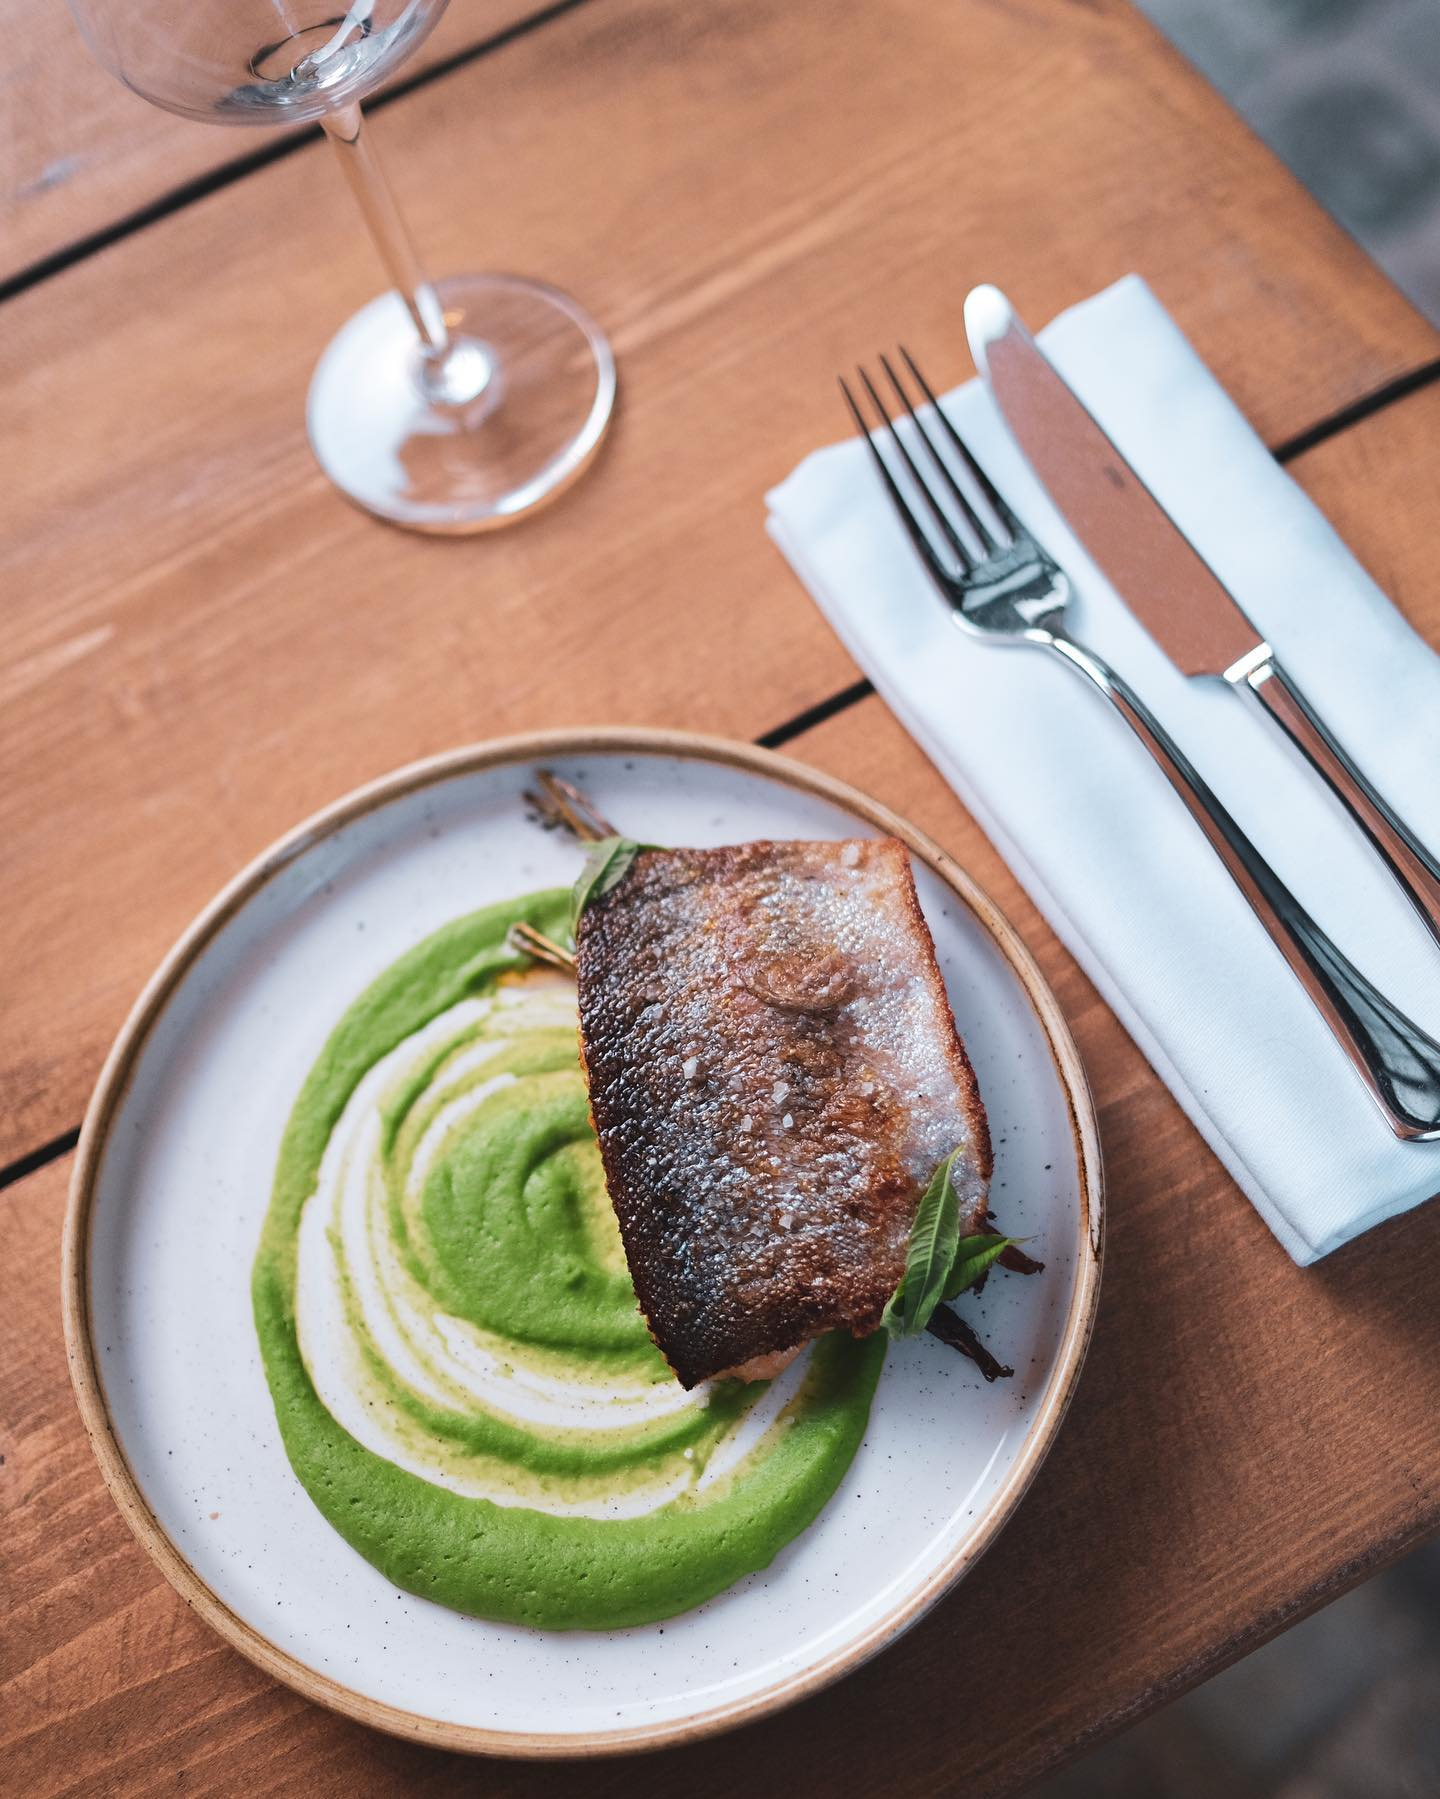 Still a few walk in spots for lunch today.   See you in the garden for some trout, peas and sorrel?